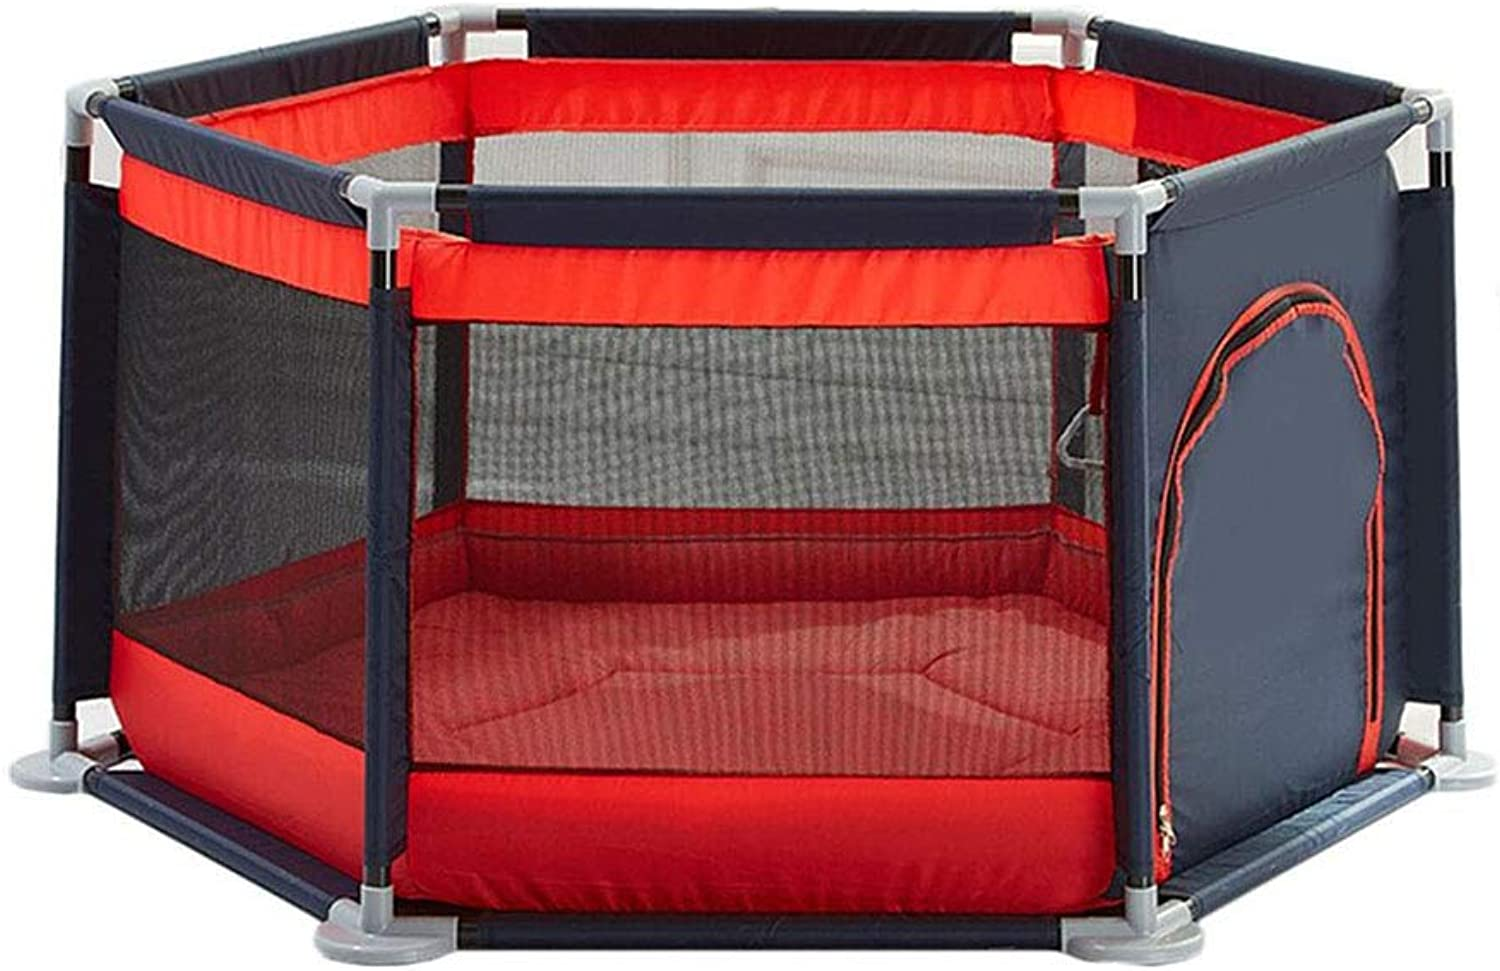 Predective Fence playpens for Toddler playpen Baby Play Yard Home Play Fence playpens for Babies Playmat Baby playpen Baby (color   Red, Size   140  65cm)